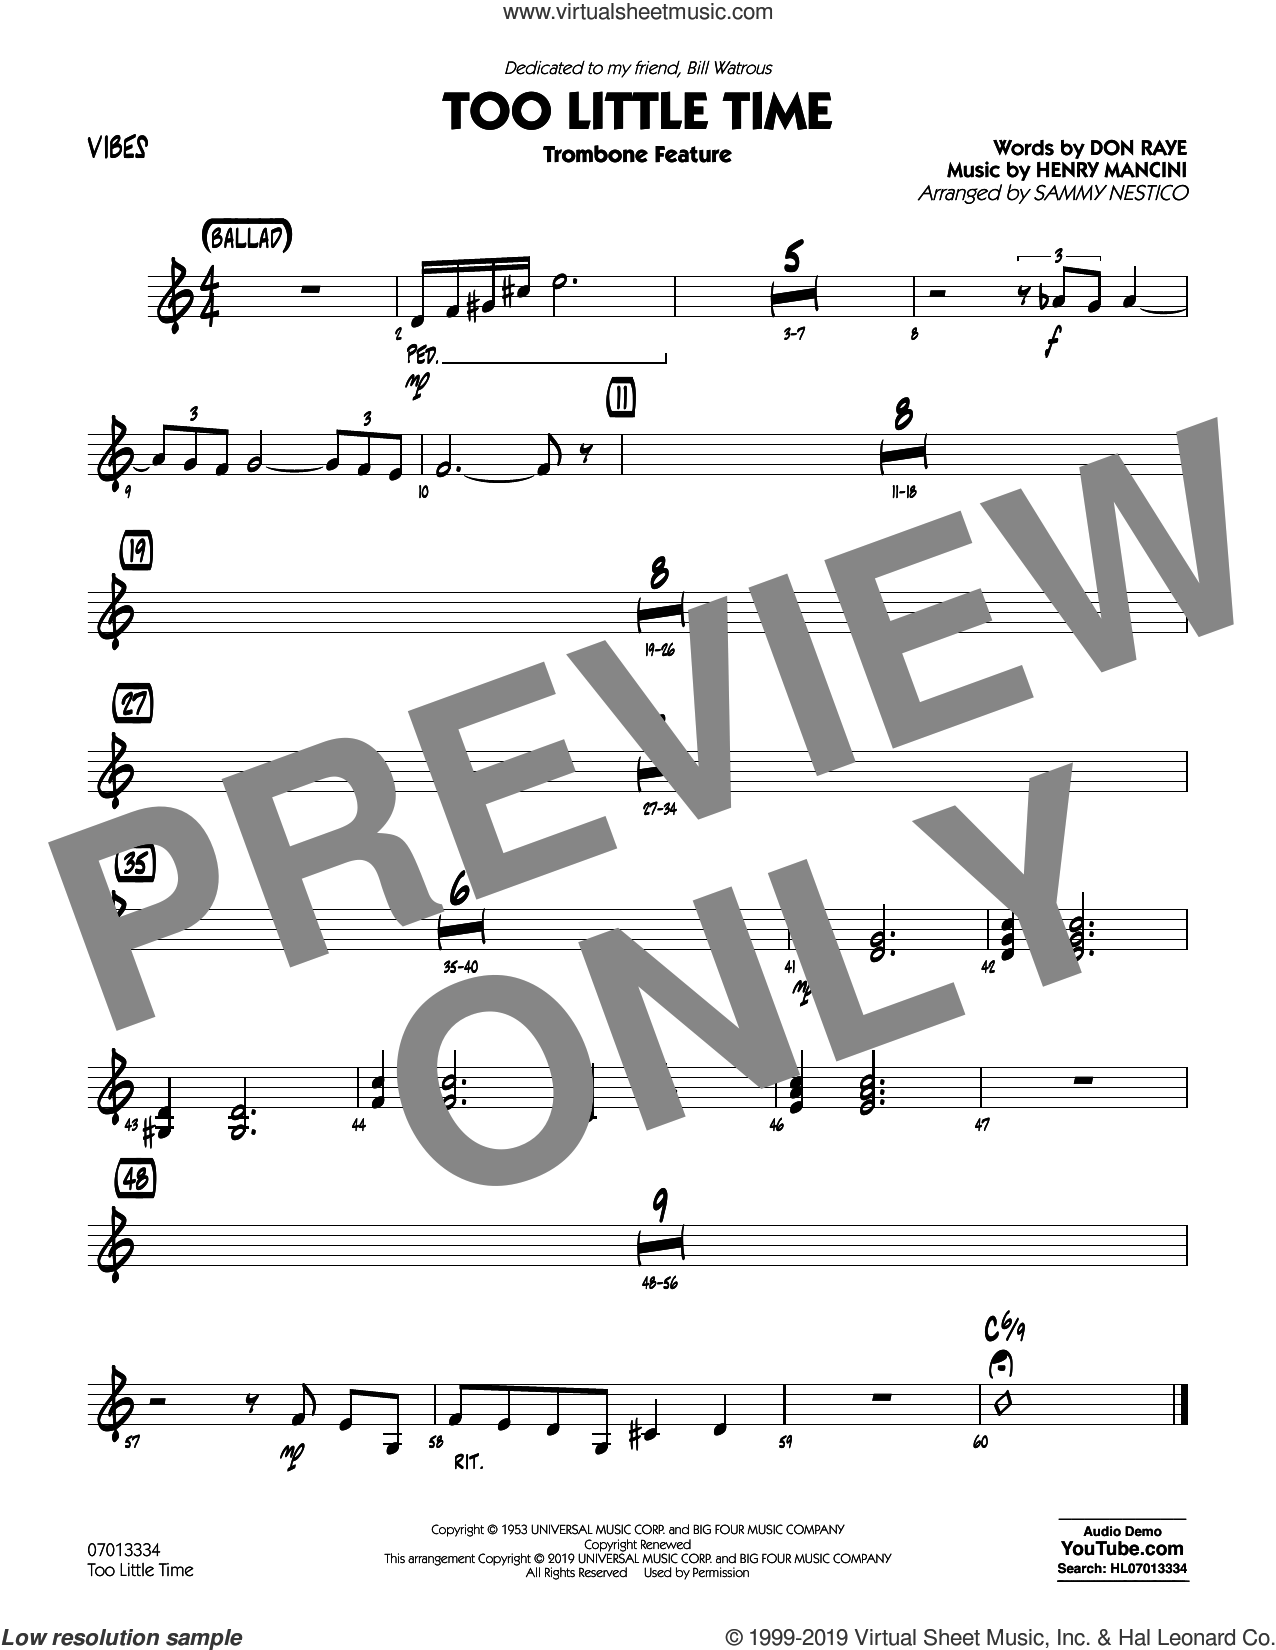 Too Little Time (arr. Sammy Nestico), conductor score (full score) sheet music for jazz band (vibes) by Henry Mancini, Sammy Nestico, Bill Watrous and Don Raye, intermediate skill level